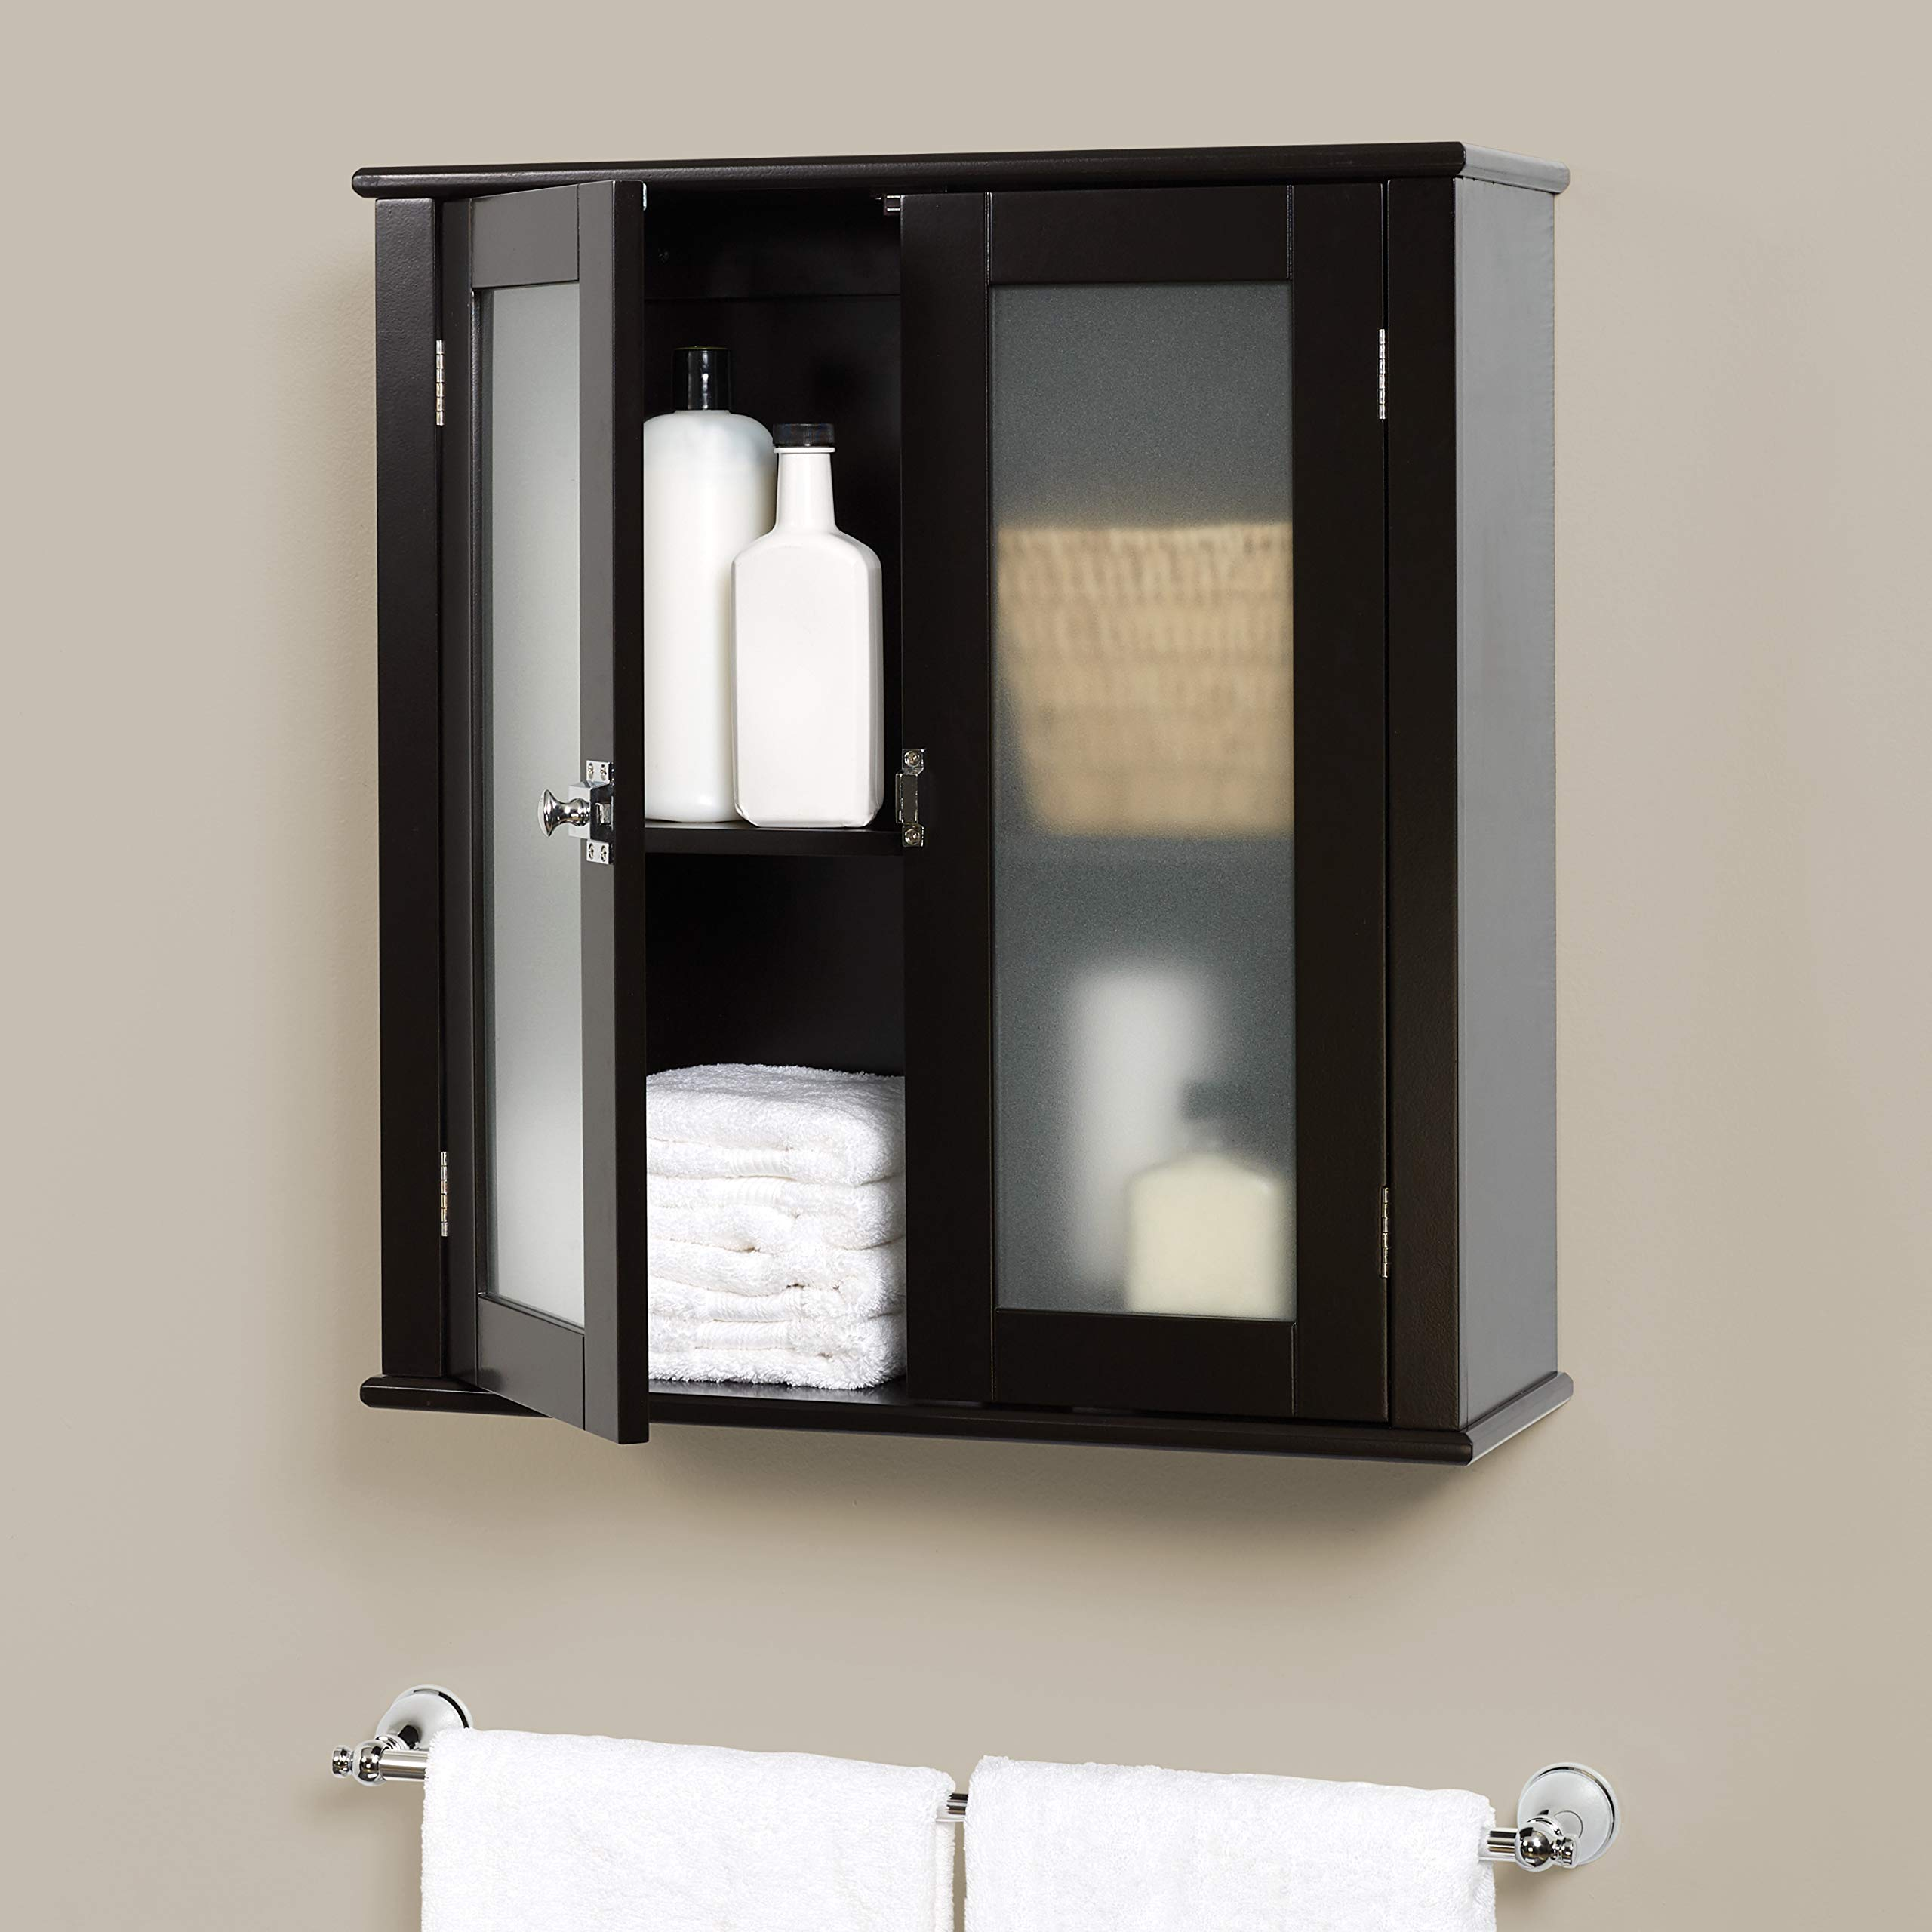 Zenna Home Classic Wall Cabinet, Espresso by Zenna Home (Image #3)